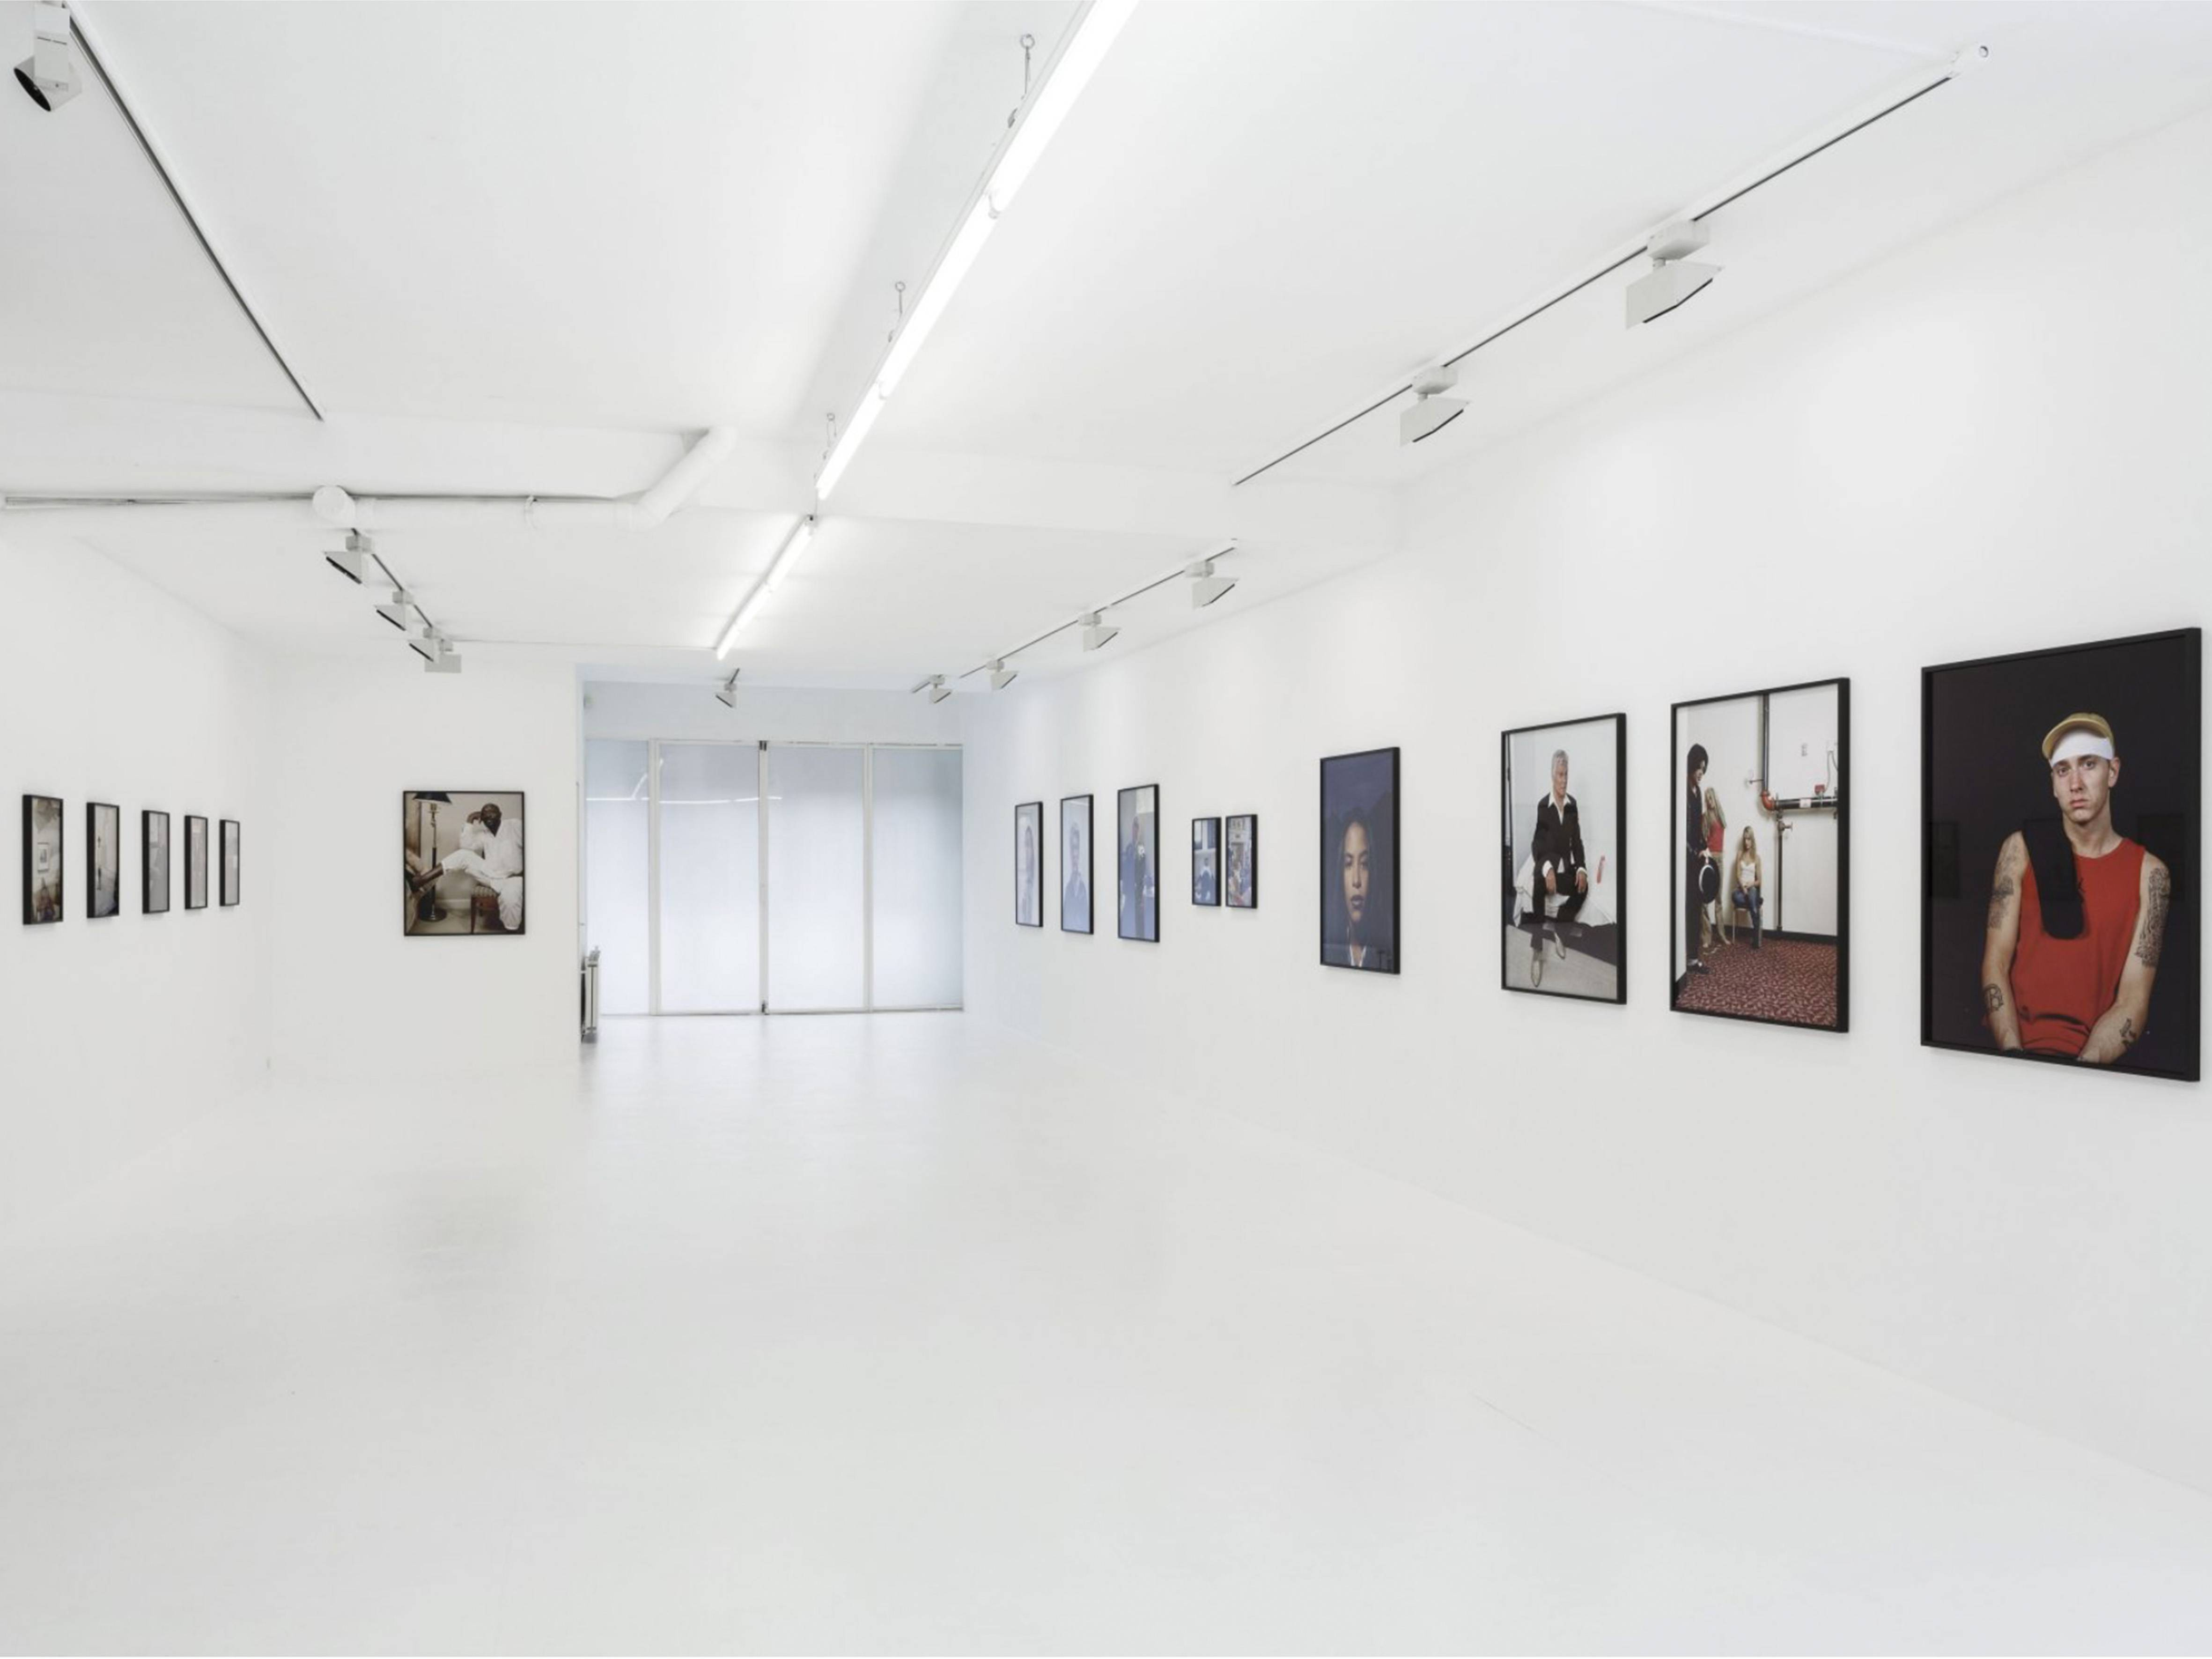 ON VIEW NOW: DANA LIXENBERG AT GRIMM